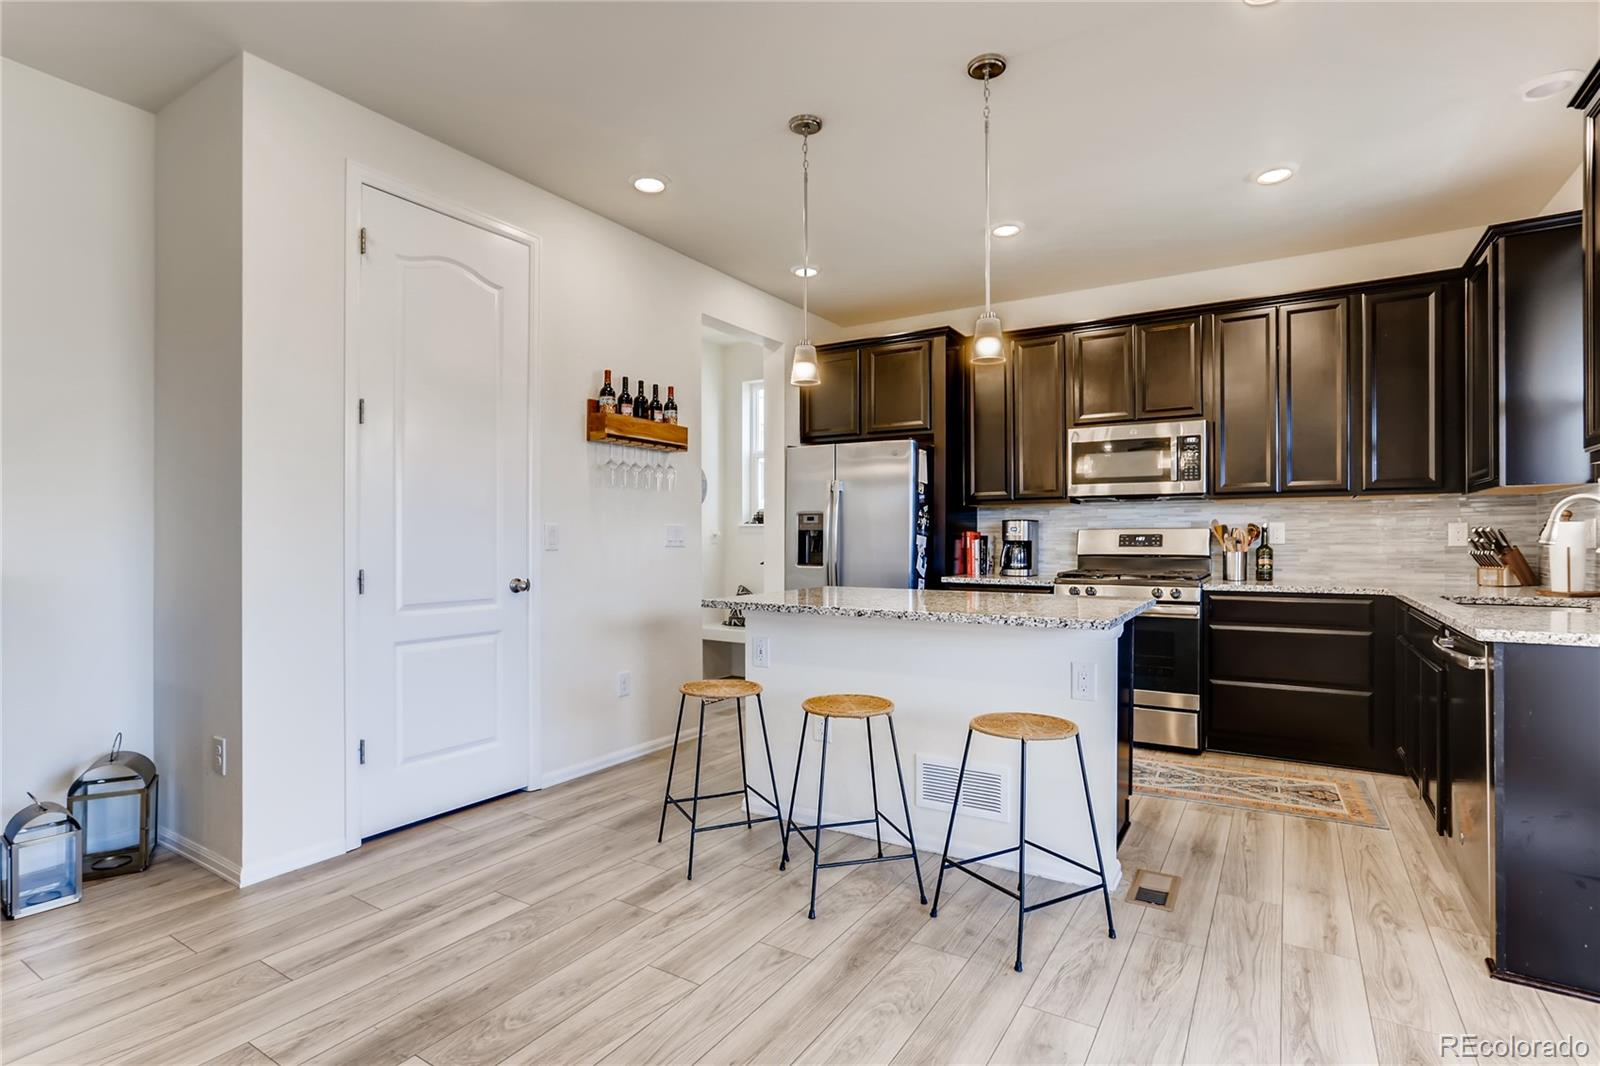 MLS# 2145354 - 10 - 26325 E Canal Place, Aurora, CO 80018